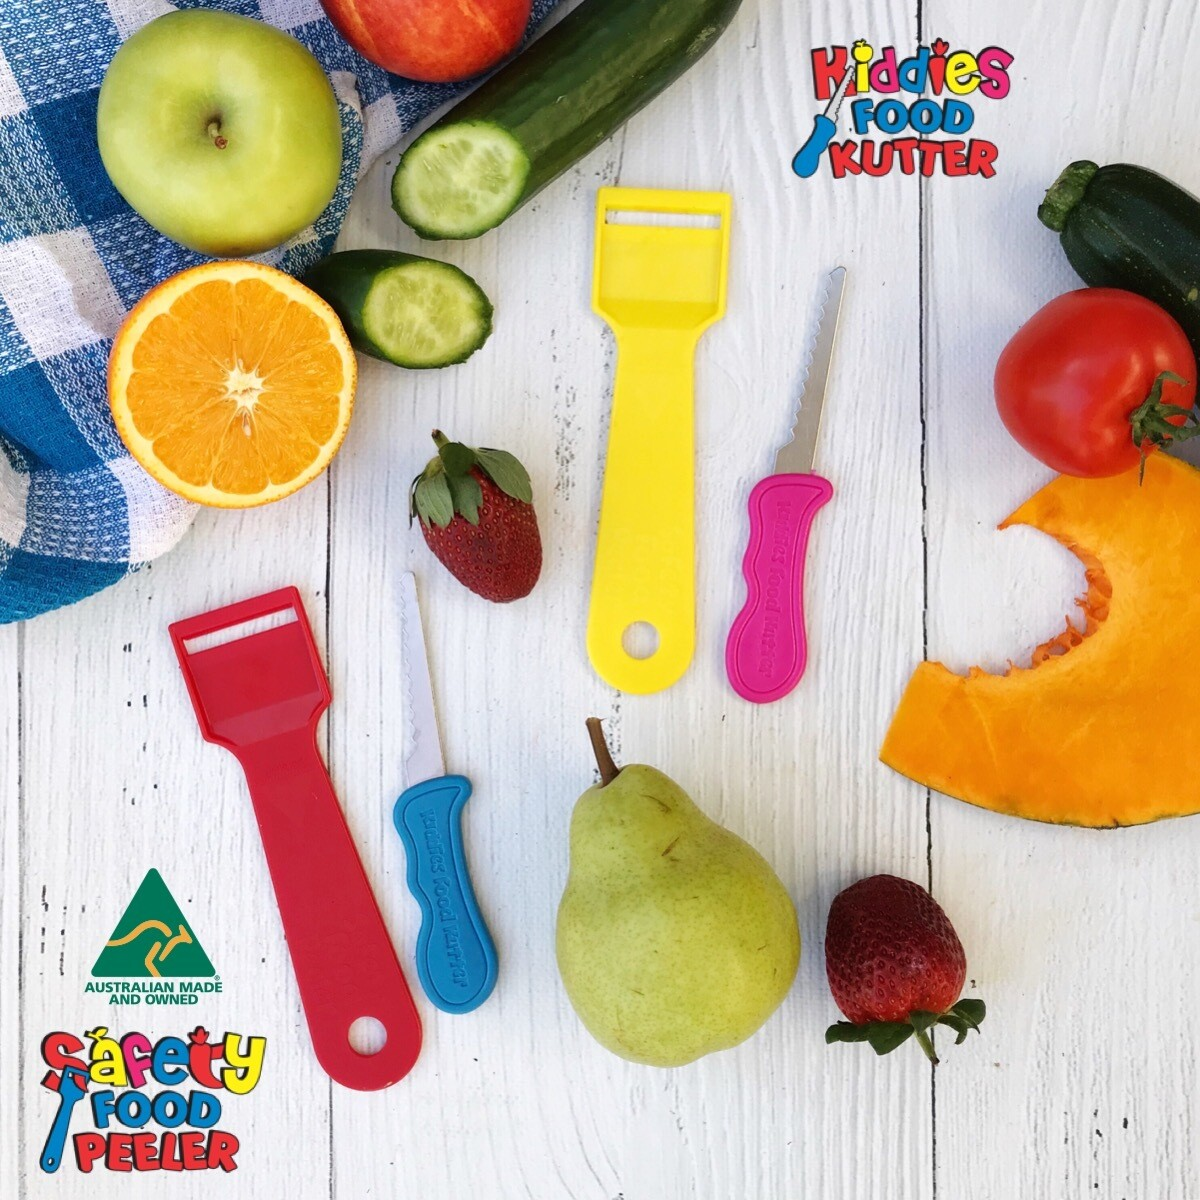 Kiddies Food Kutter - 2 PACK